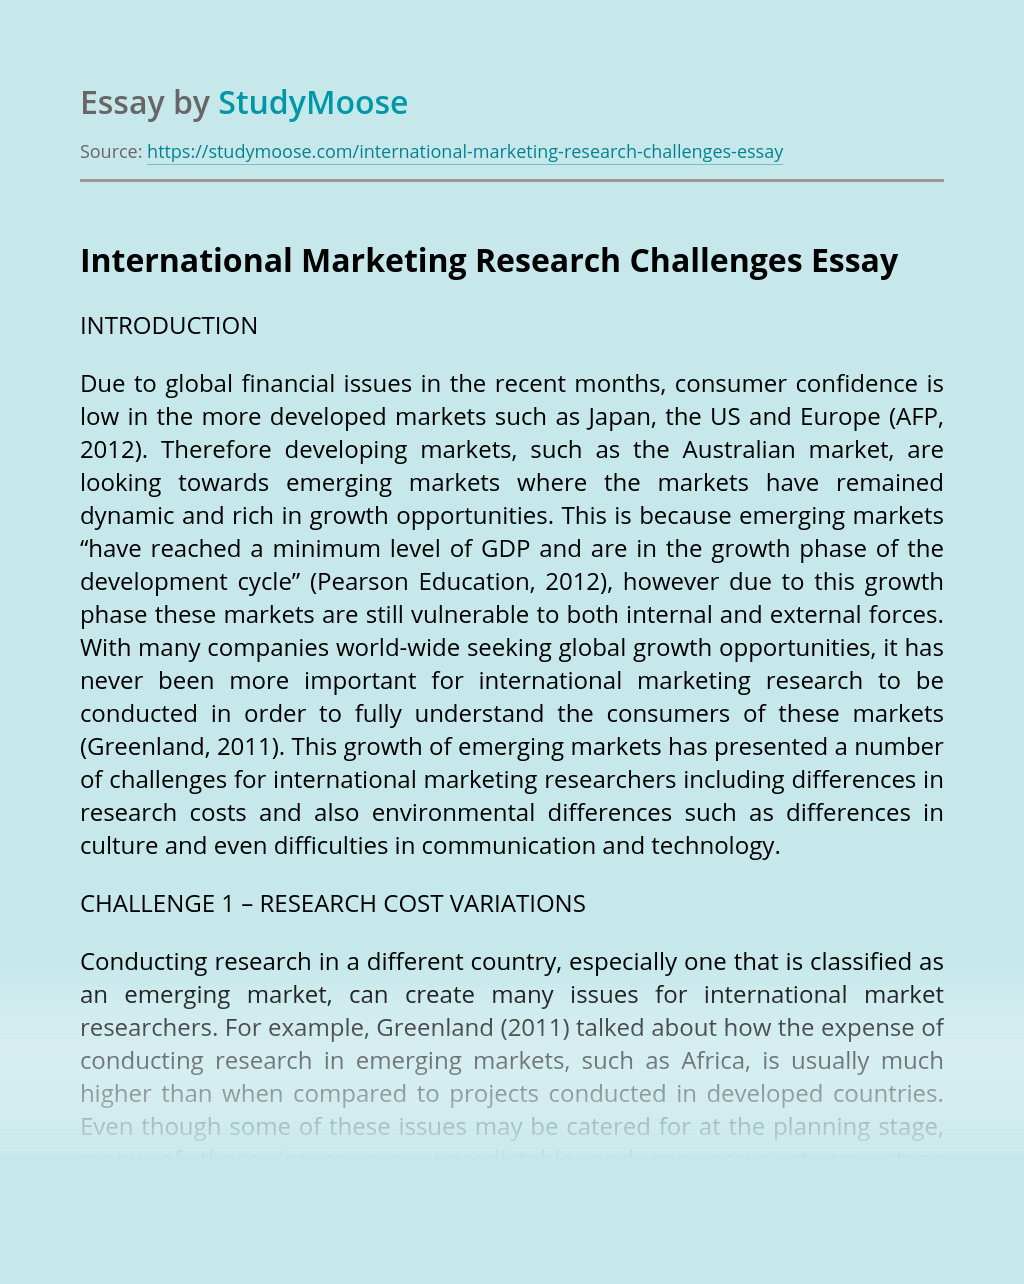 International Marketing Research Challenges